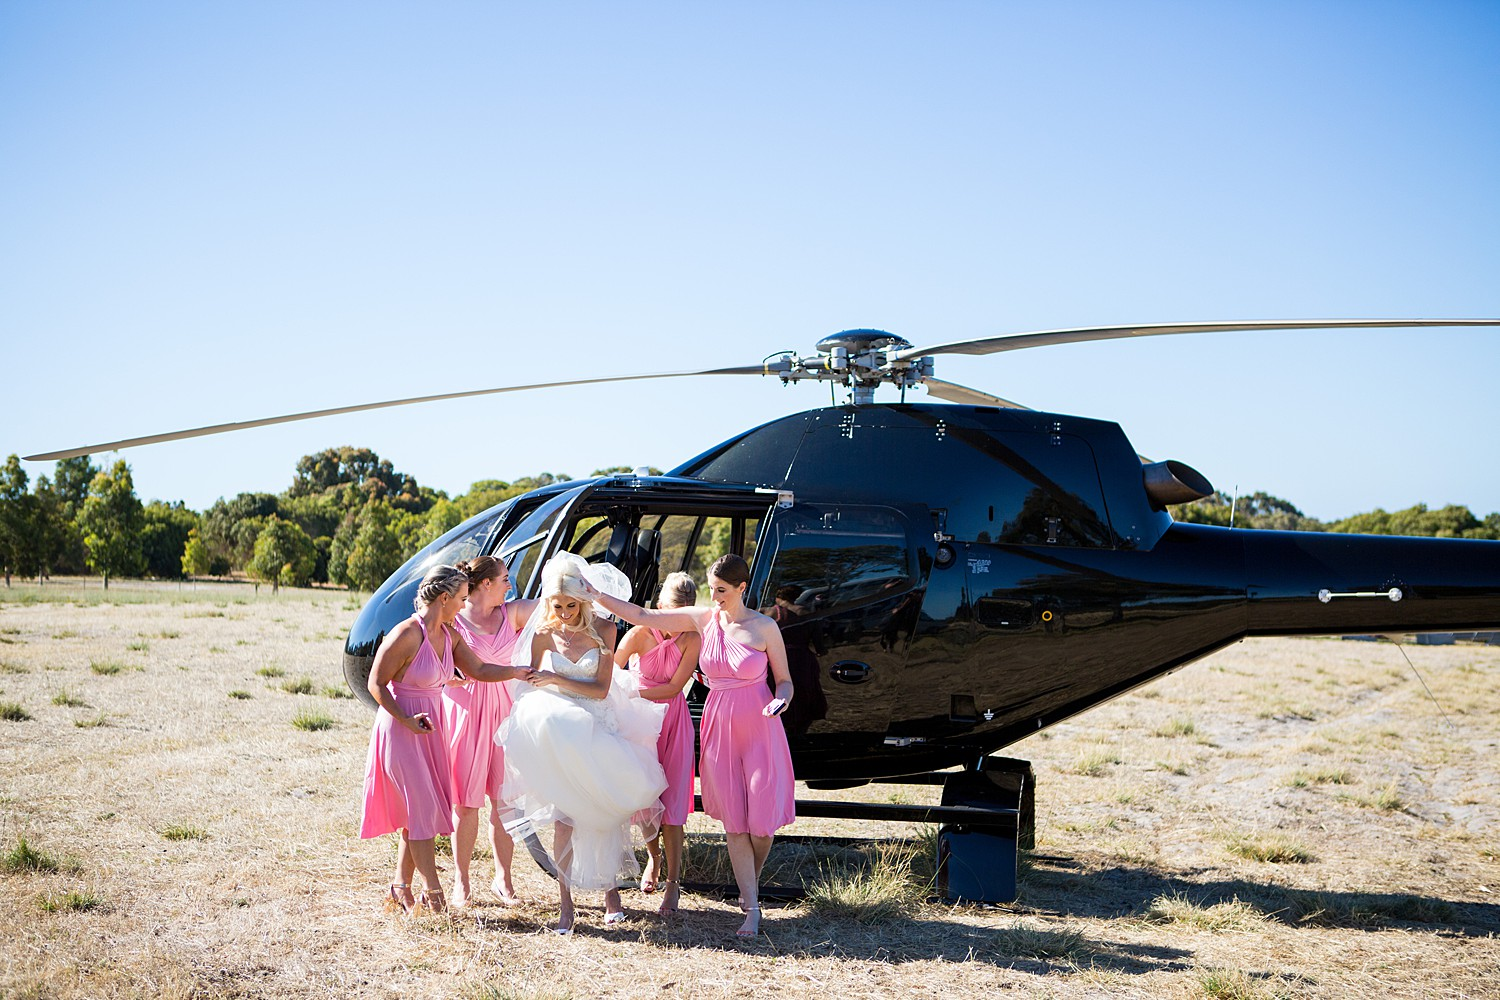 wise_wines_southwest_WA_wedding_0023.jpg